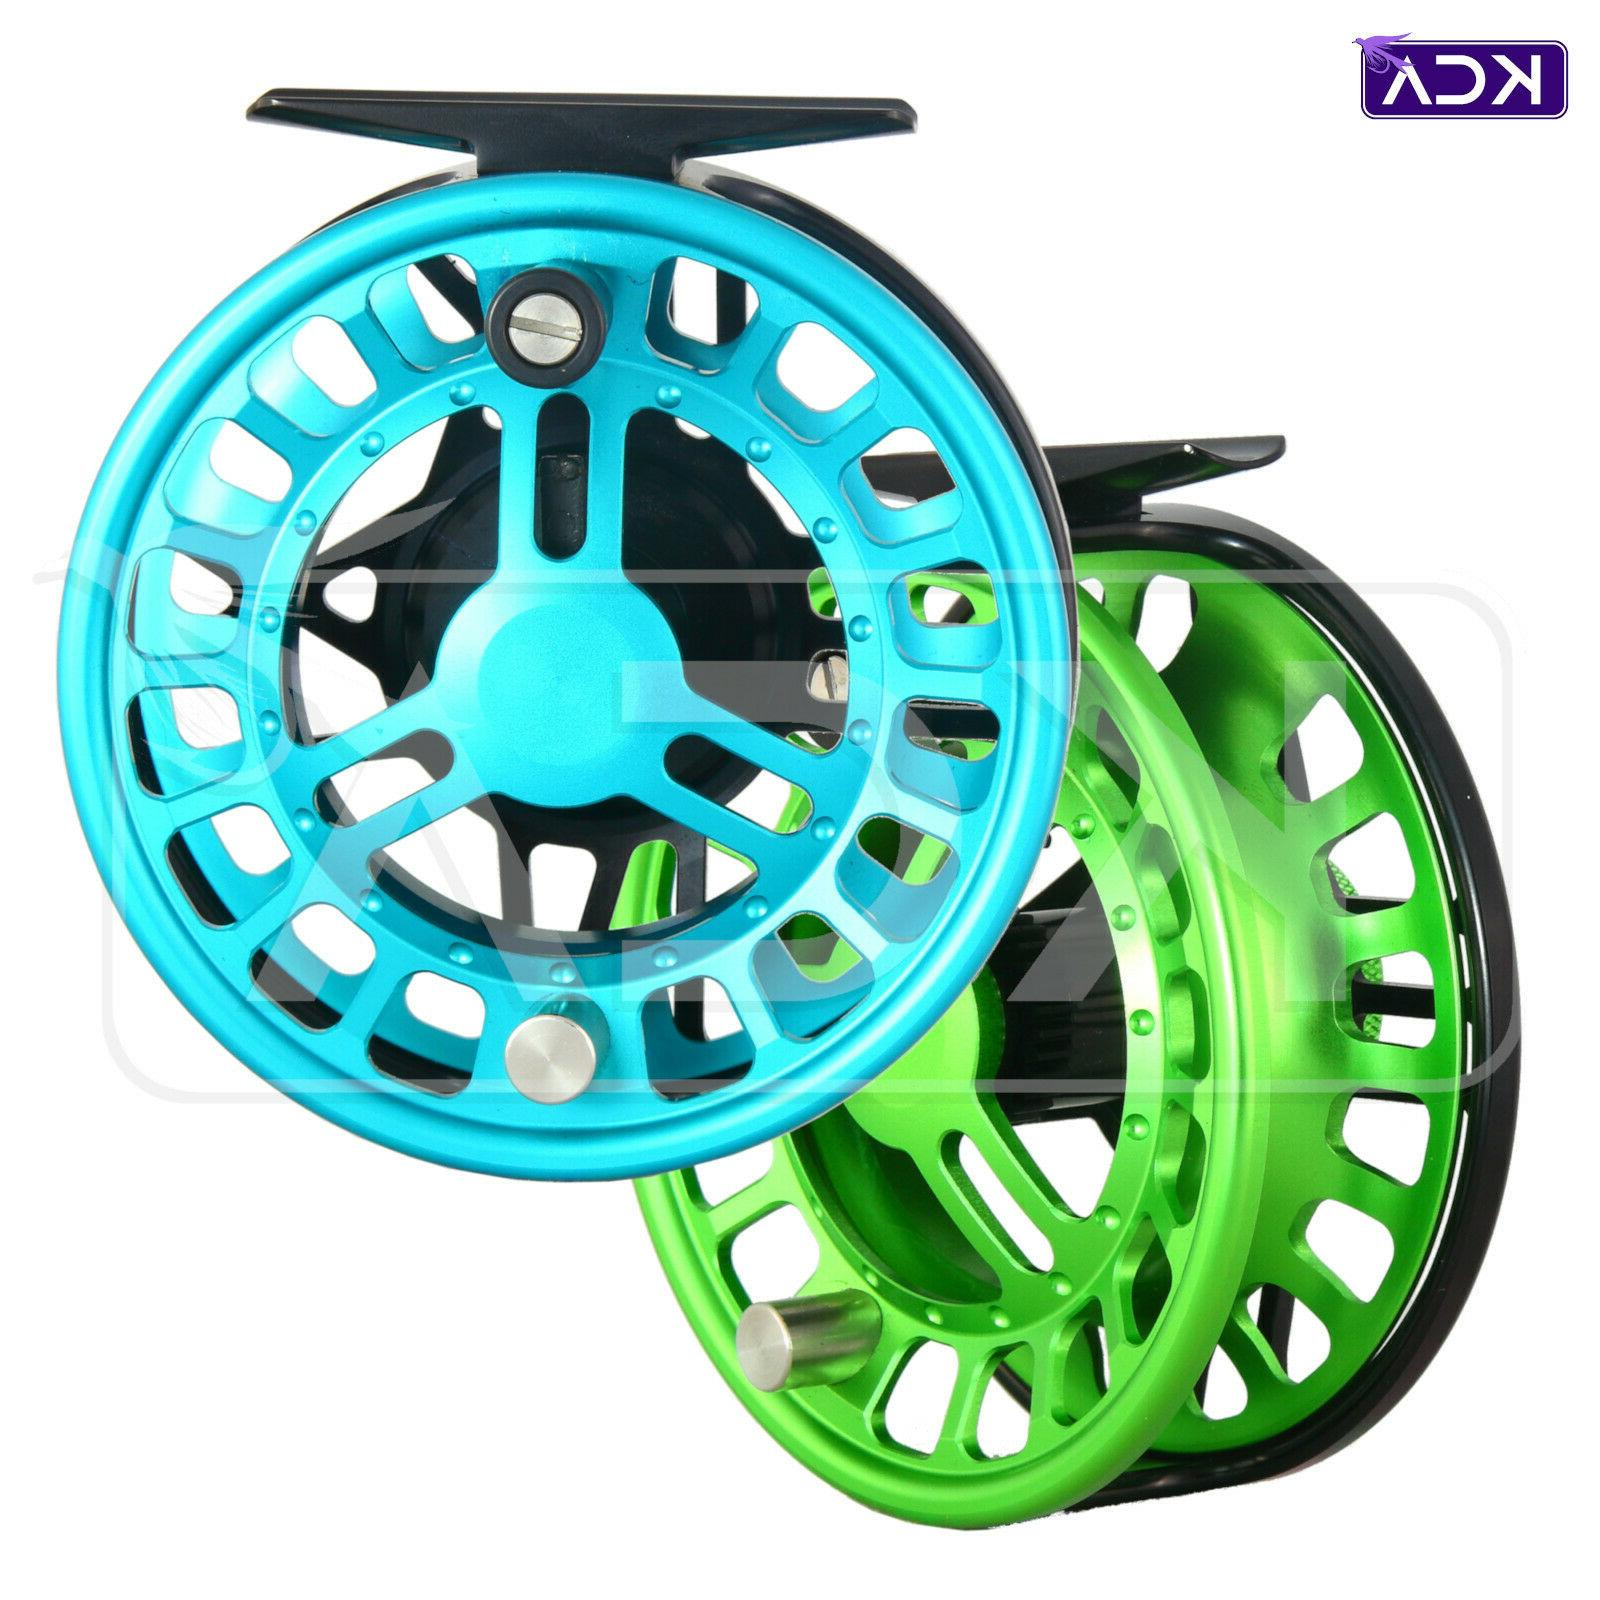 timefly 7 8wt cnc machined fly reel